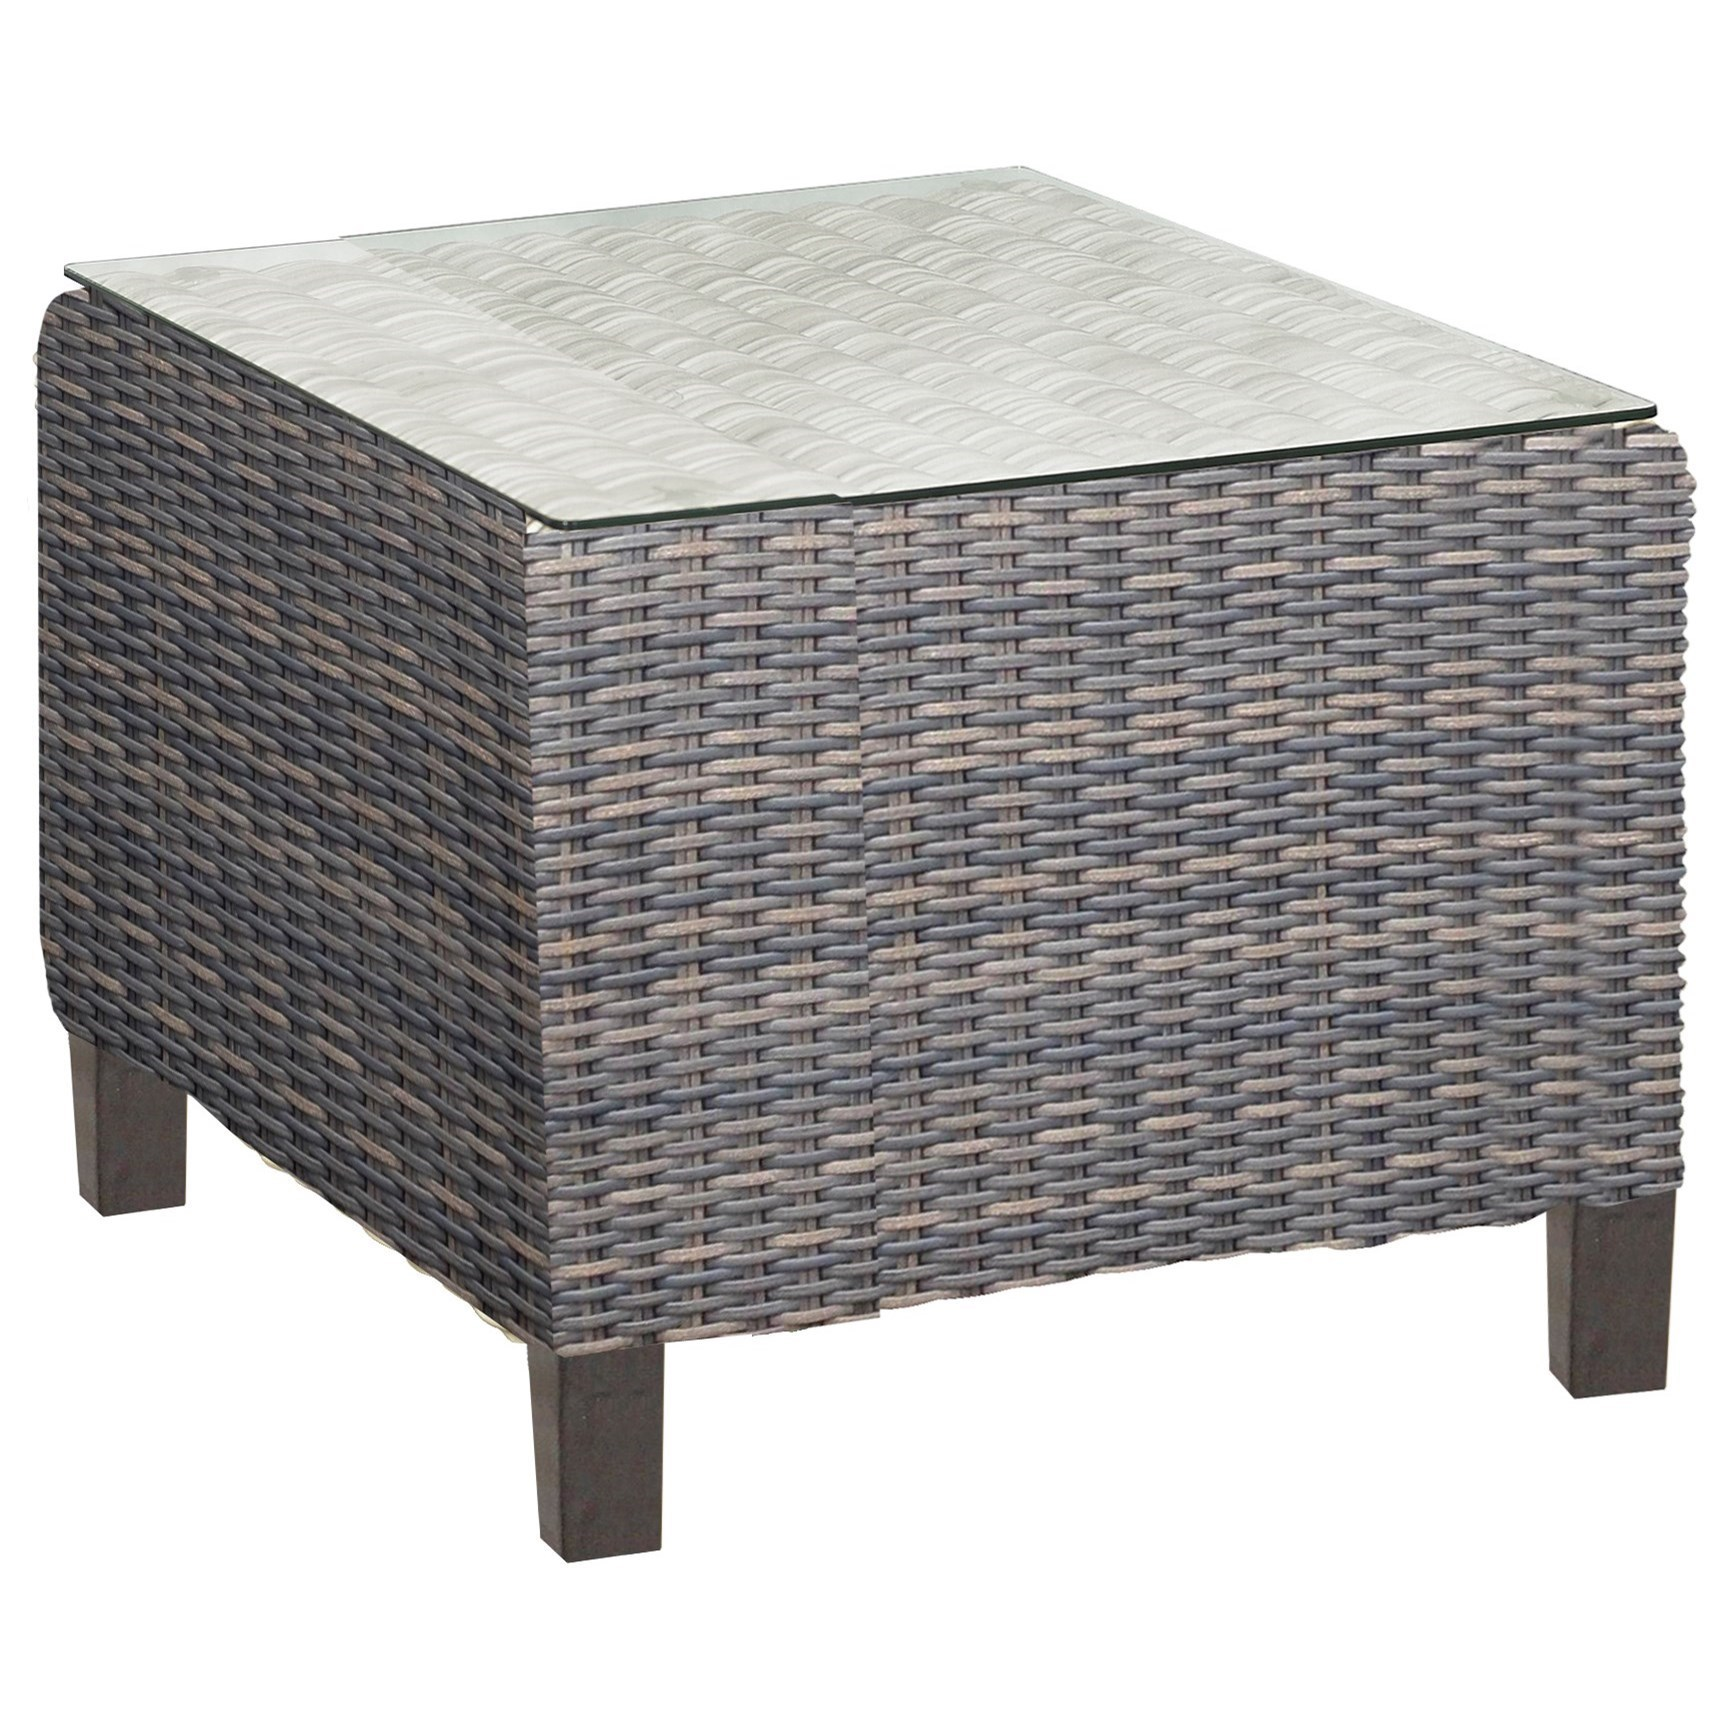 San Marino Woven Square End Table With Glass Top By NorthCape International